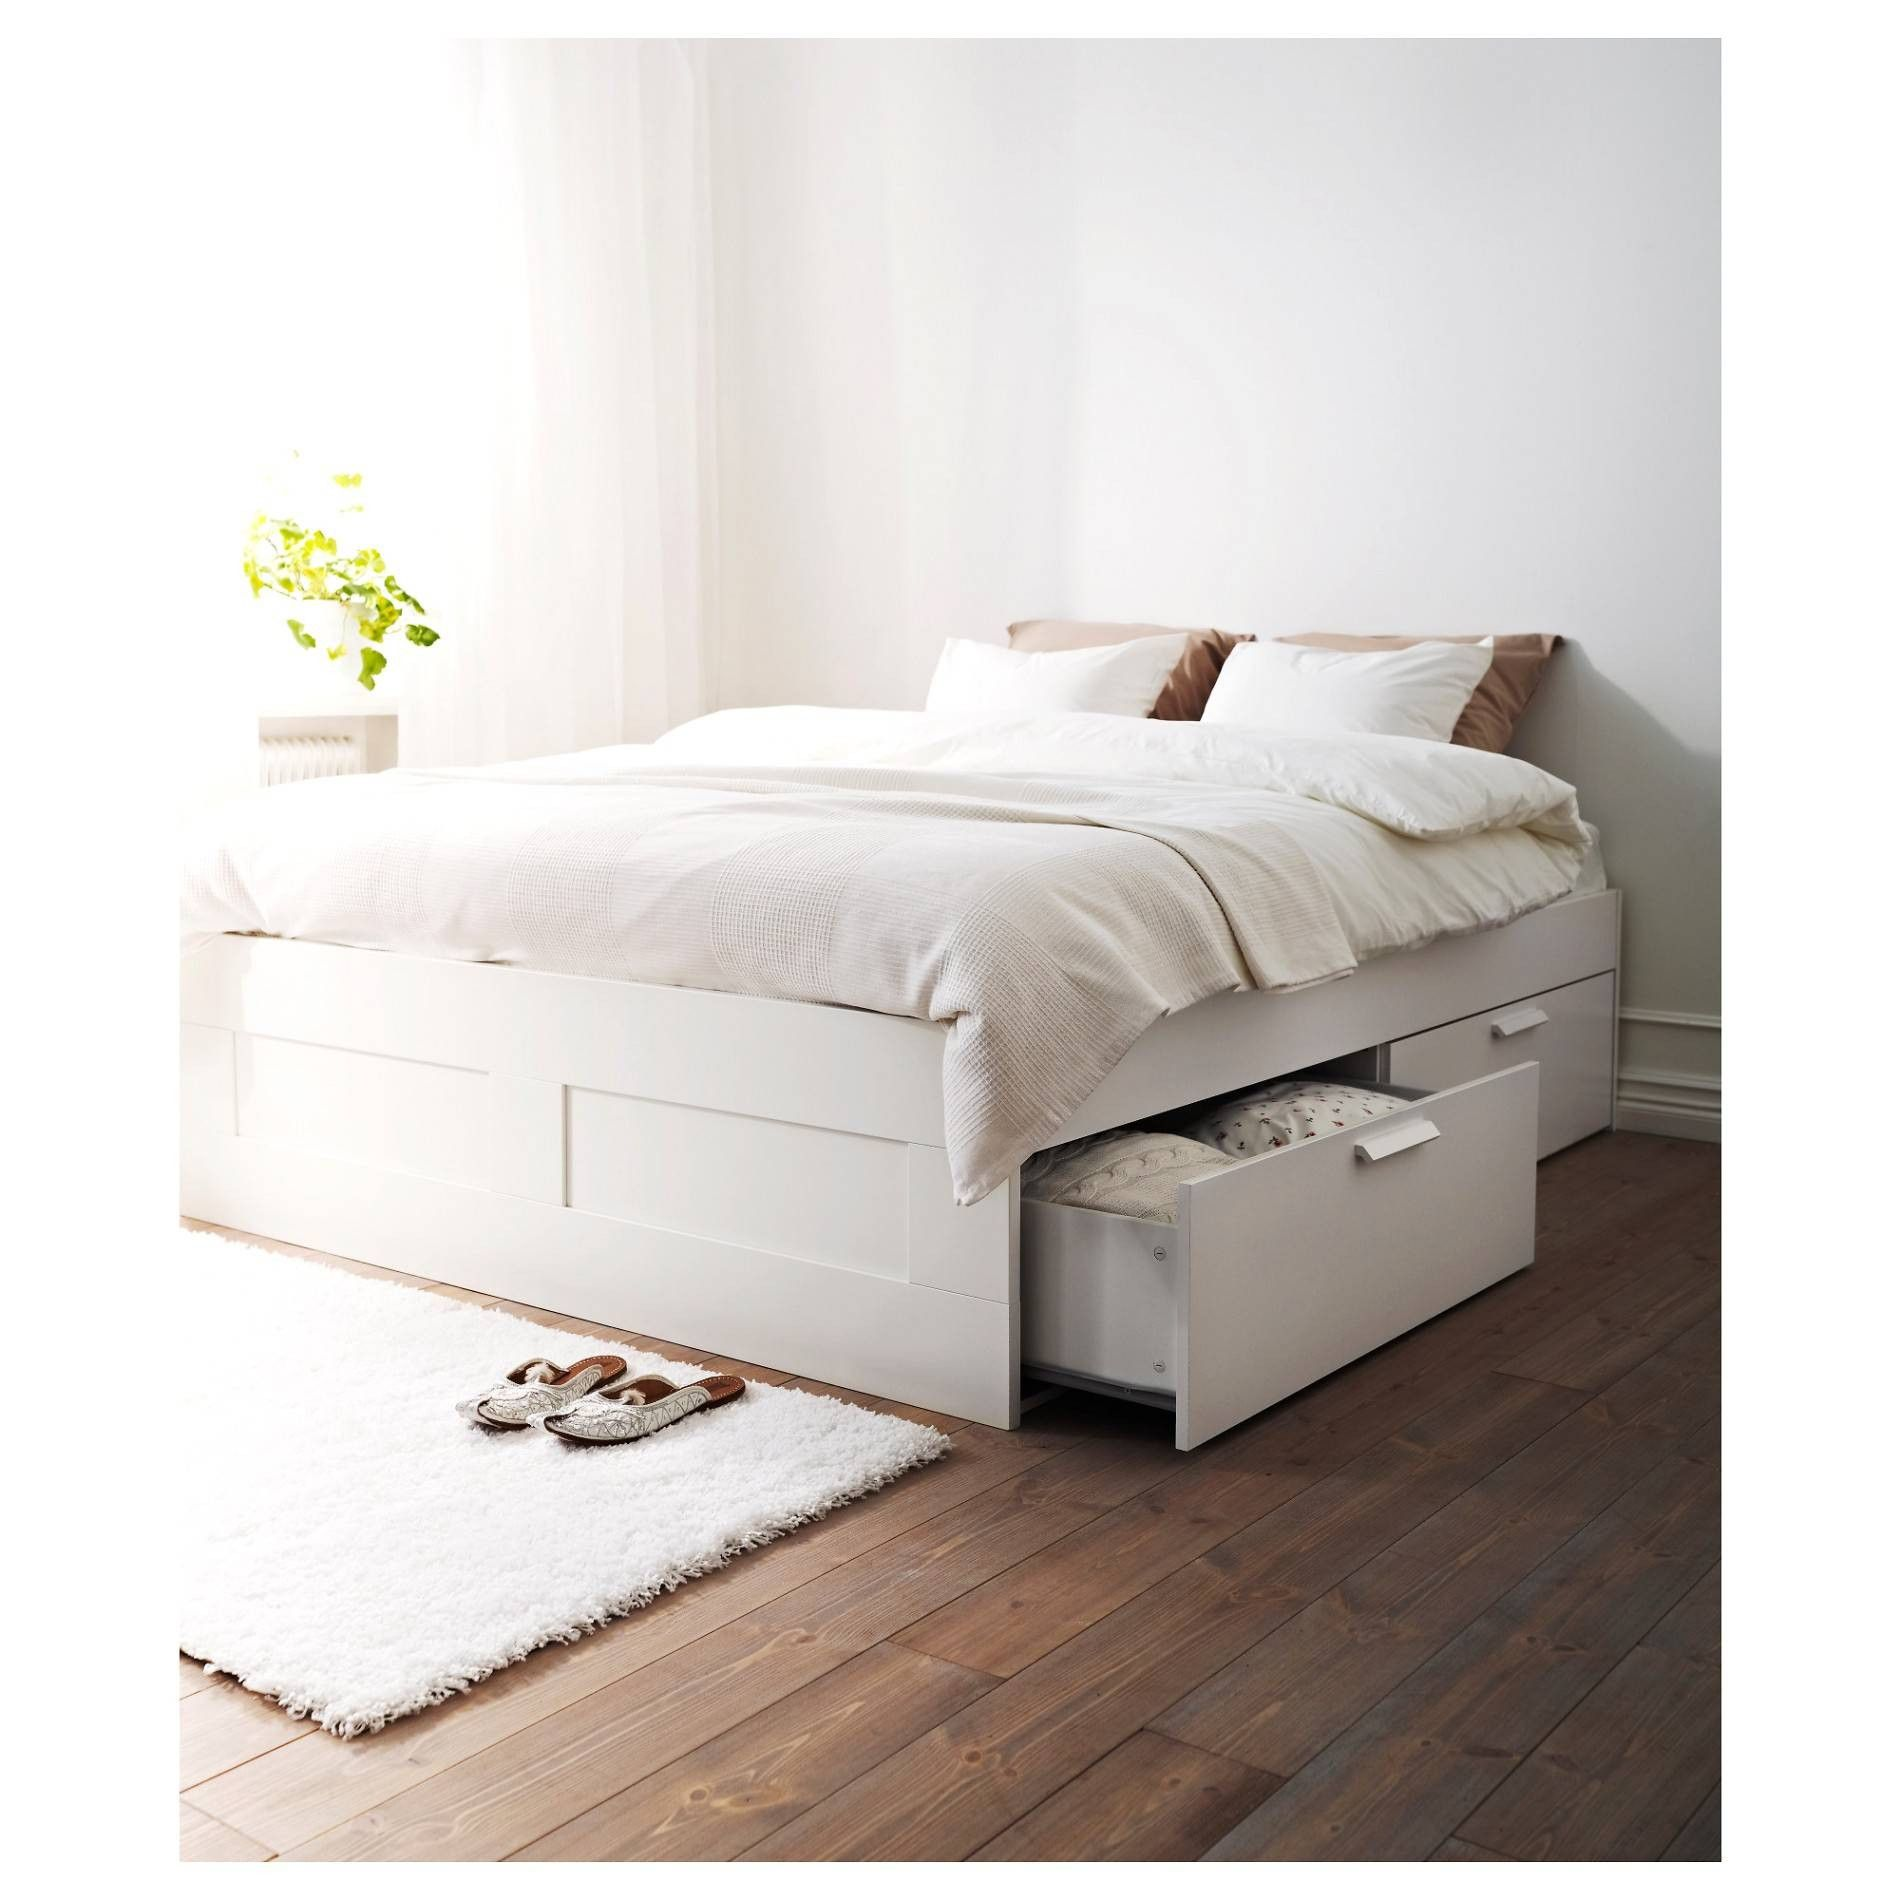 Extraordinay Couch Leder Weiss Bed Frame With Storage Brimnes Bed Ikea Storage Bed